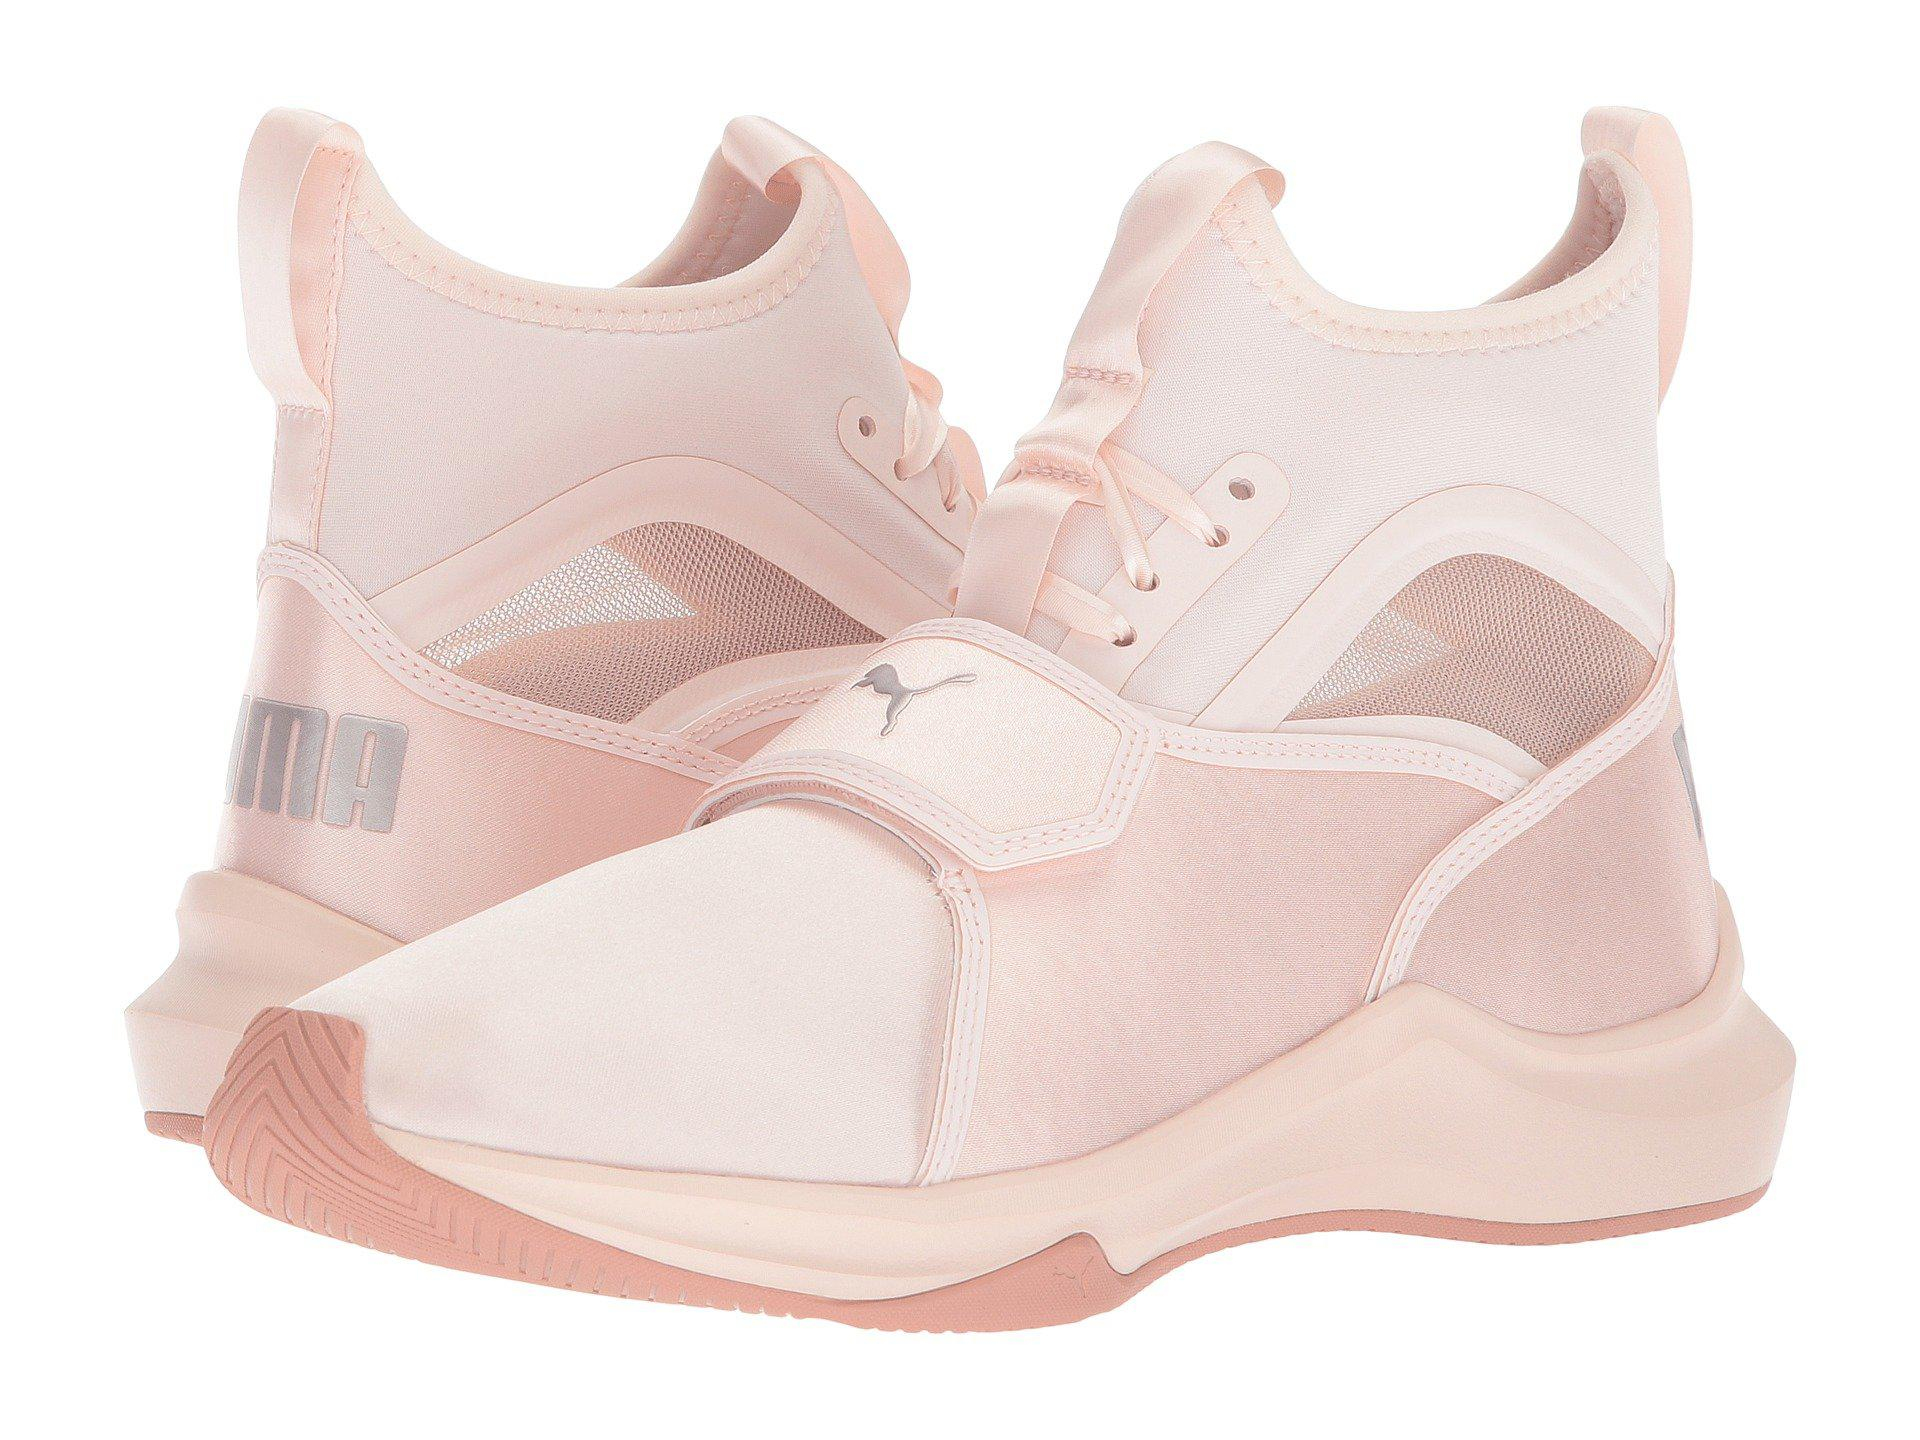 PUMA Phenom Satin Ep (pearl/pearl) Women's Shoes in Pink - Lyst